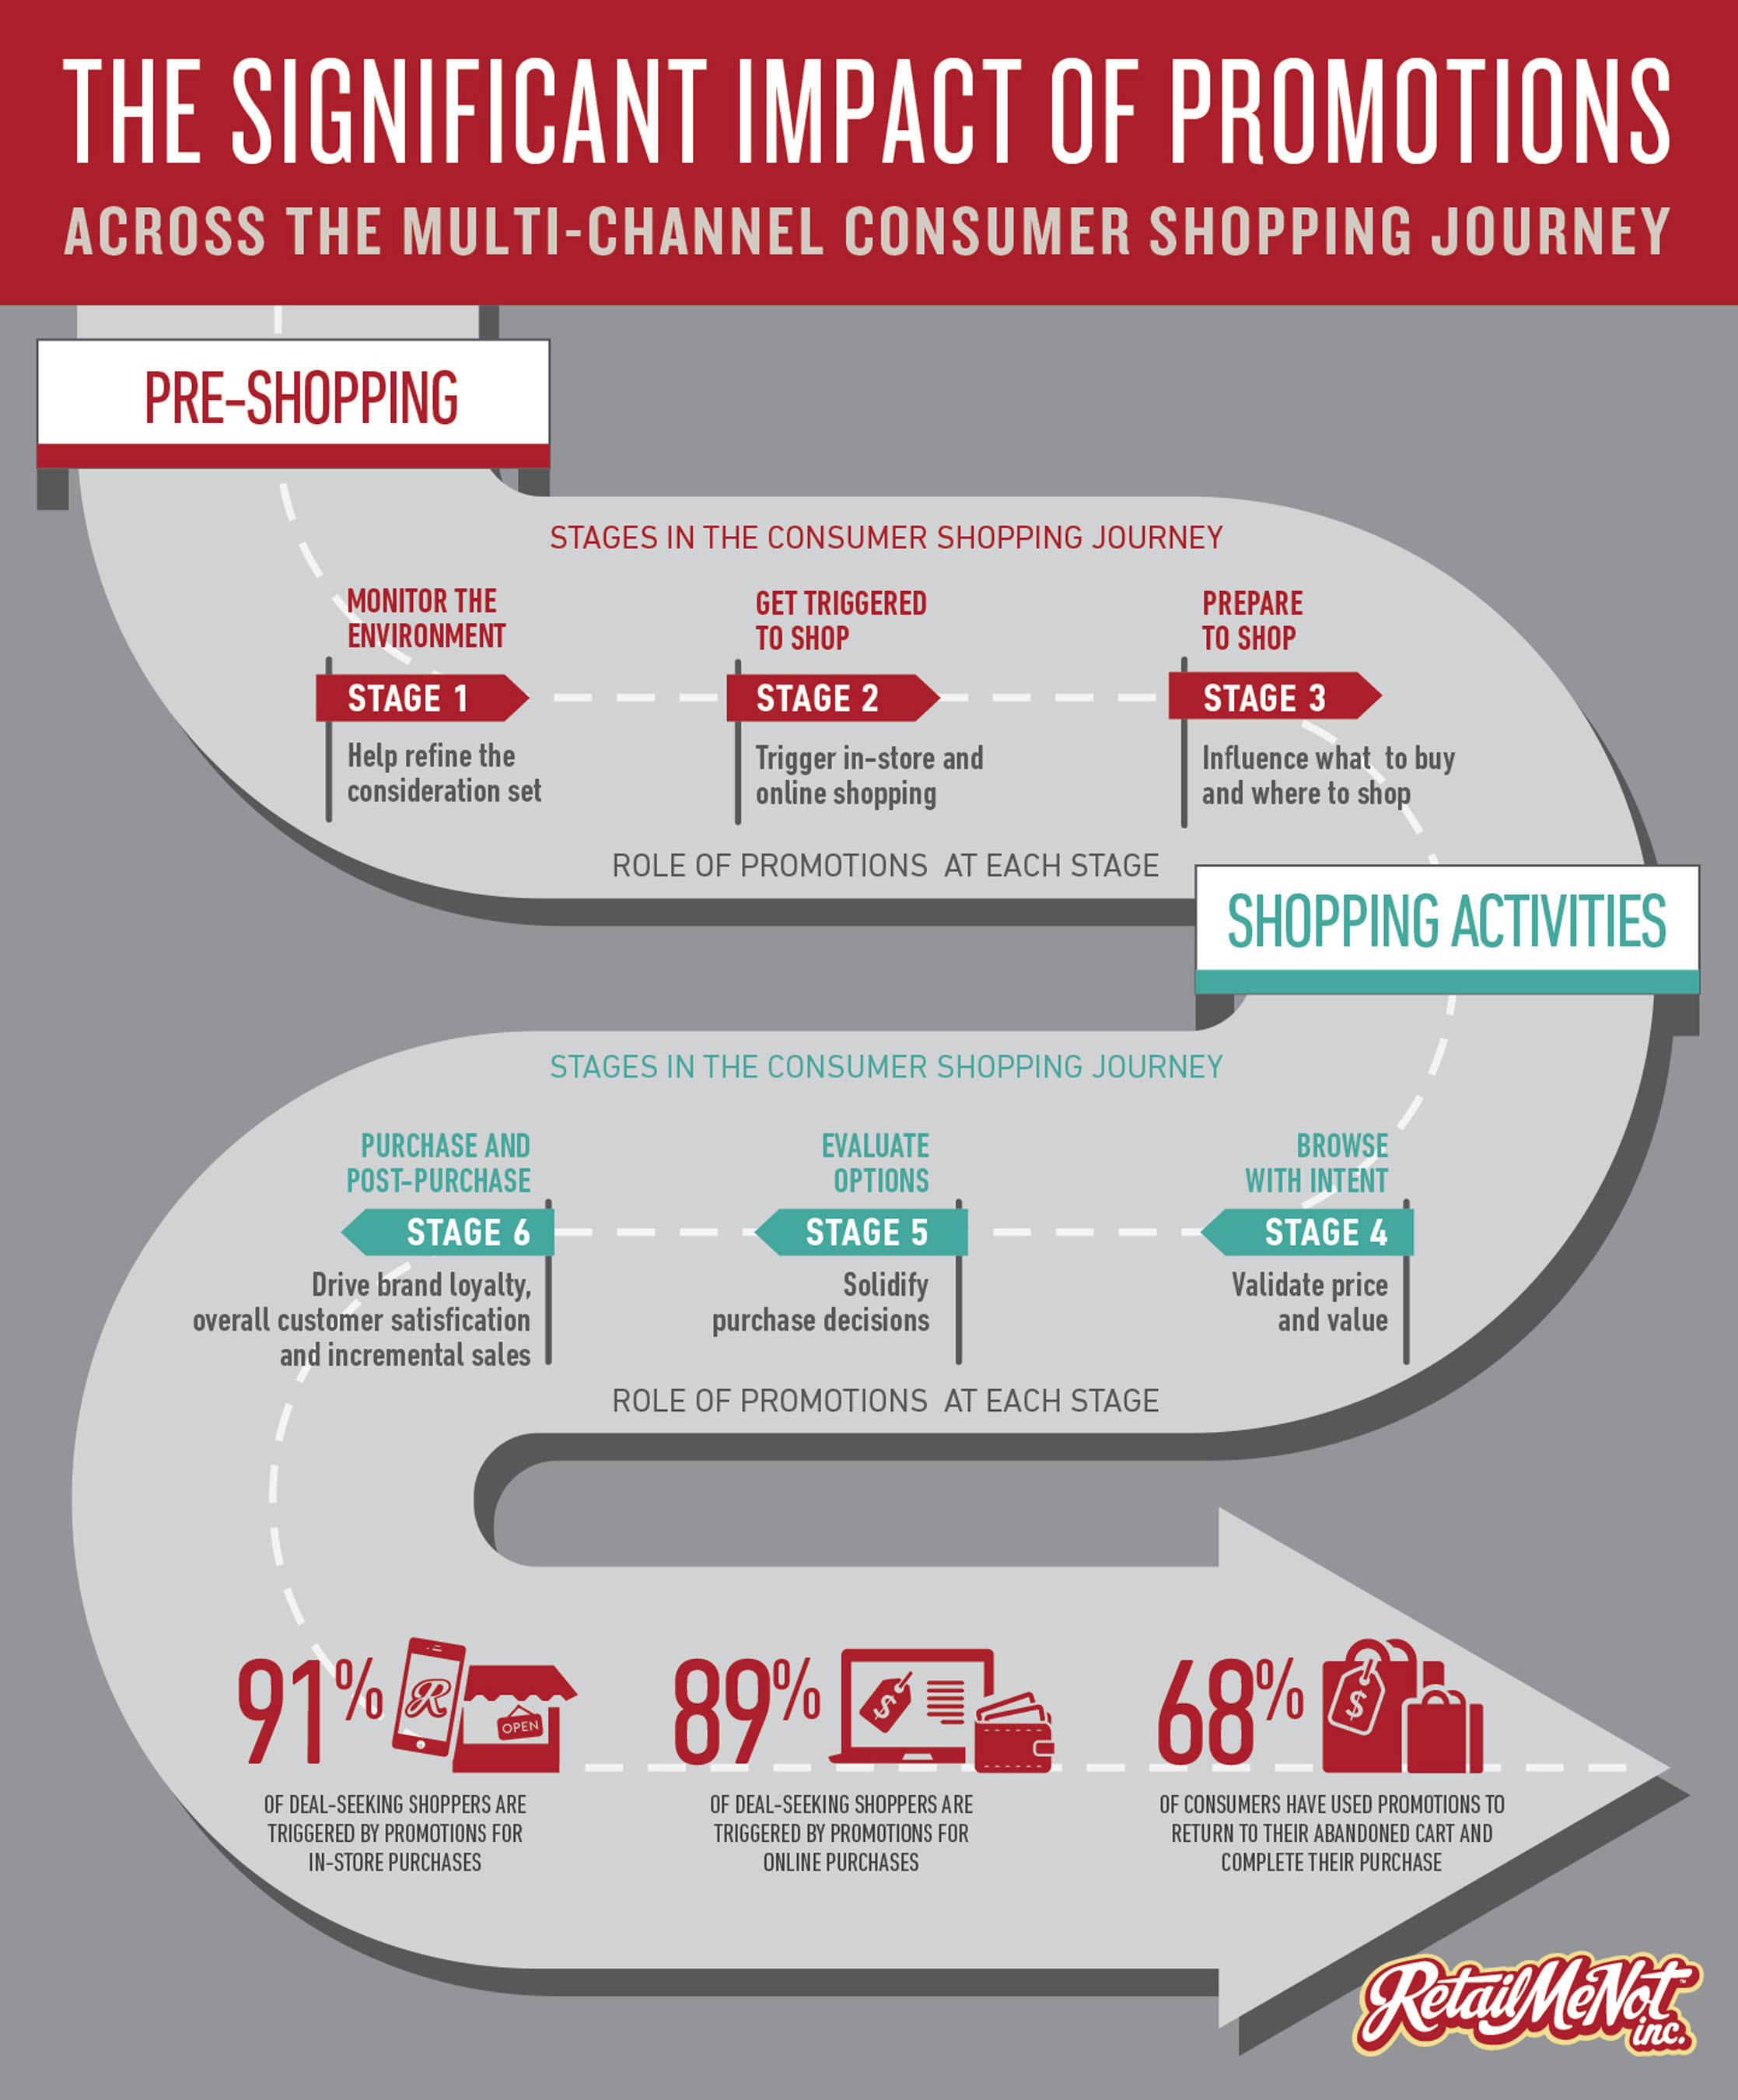 The Impact of Promotions - access the full study at rmn.com/impact